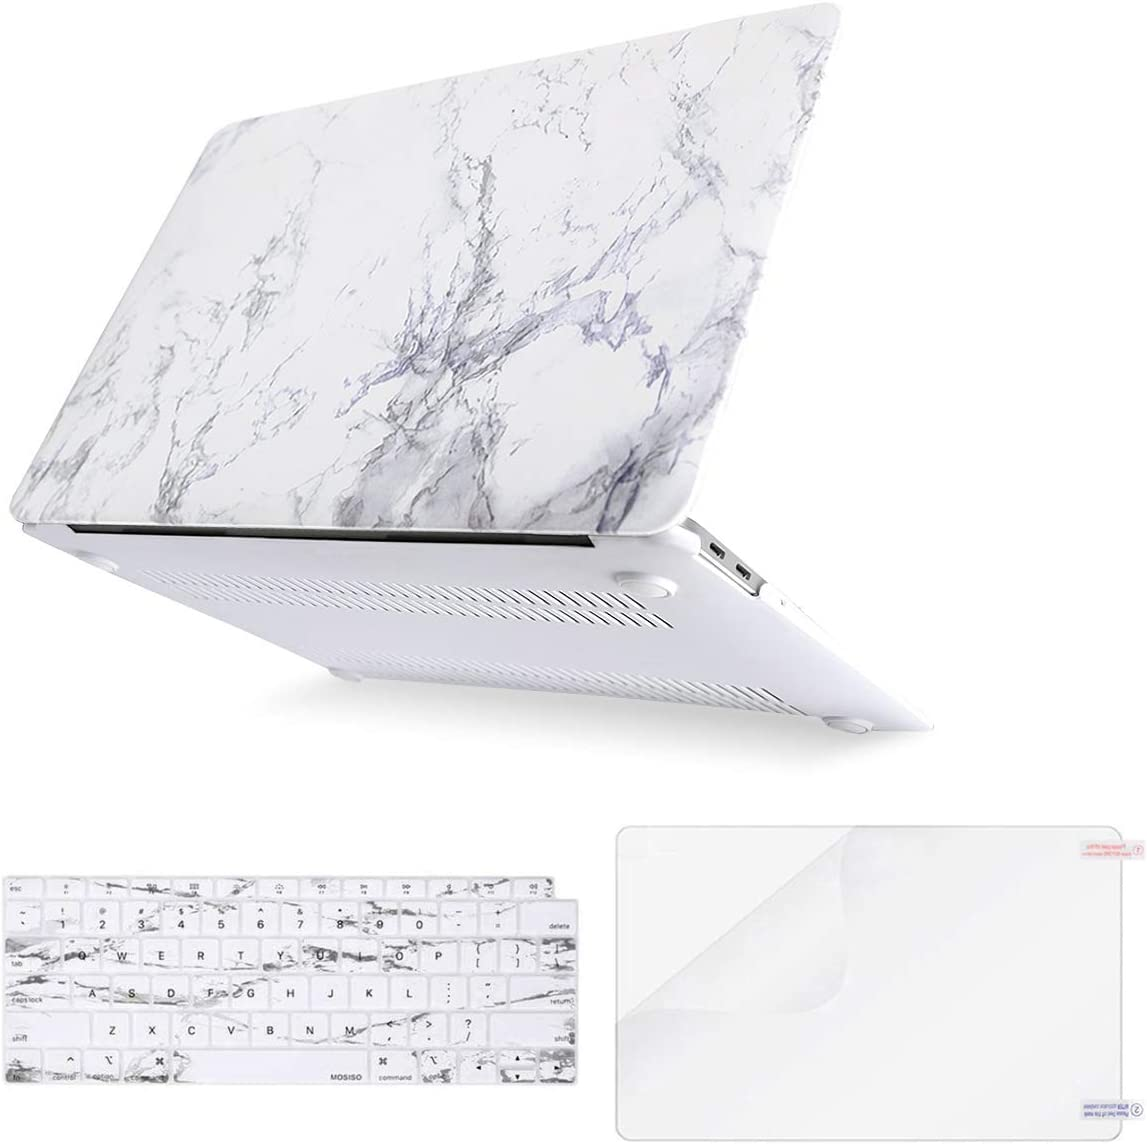 MOSISO MacBook Air 13 inch Case 2020 2019 2018 Release A2179 A1932 Retina Display, Plastic Pattern Hard Shell & Keyboard Cover & Screen Protector Only Compatible with MacBook Air 13, White Marble